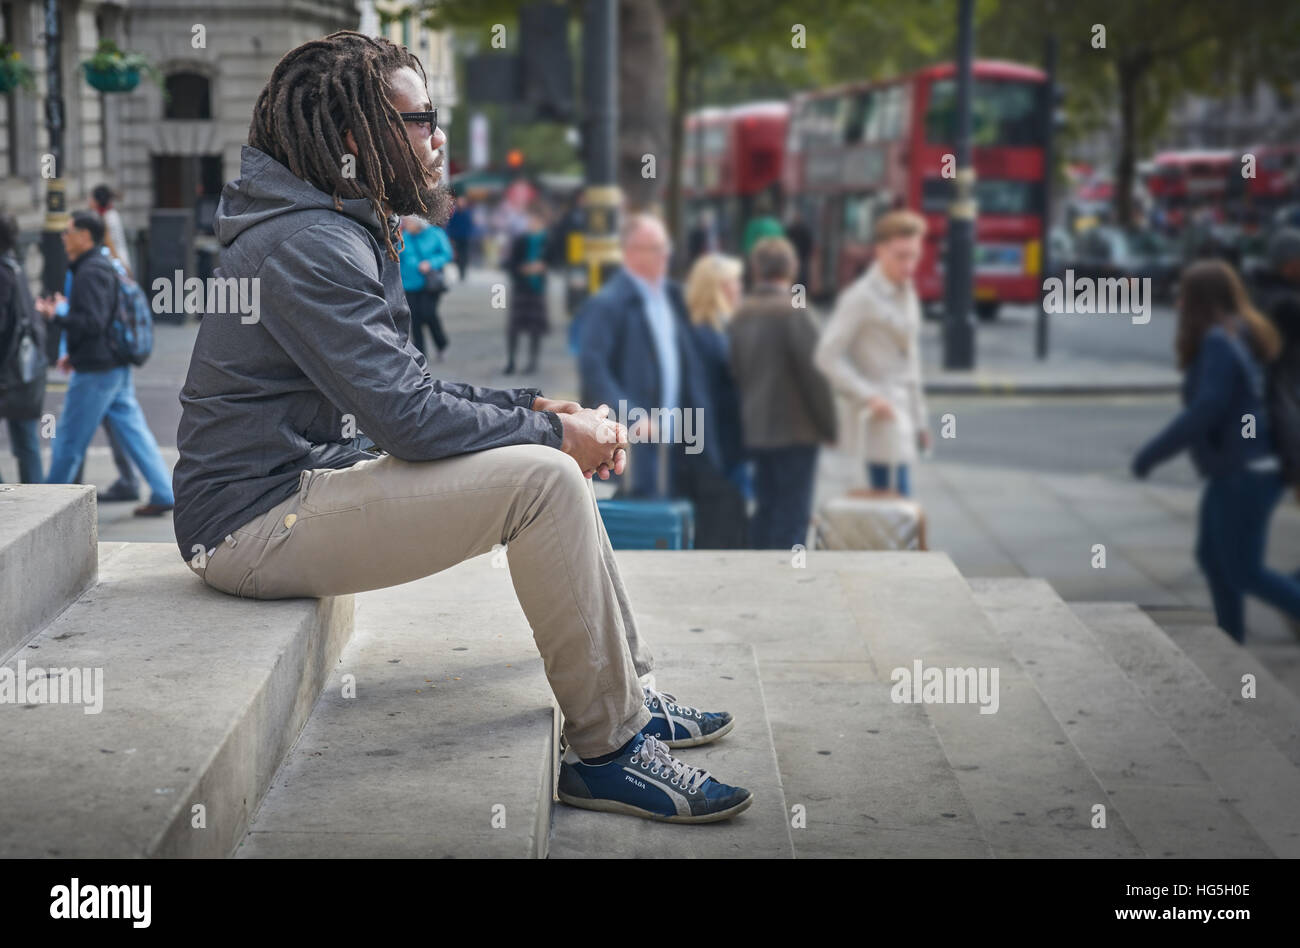 black man.  Man contemplating.   dreadlocks.  rastafarian.   Alone in the city. - Stock Image